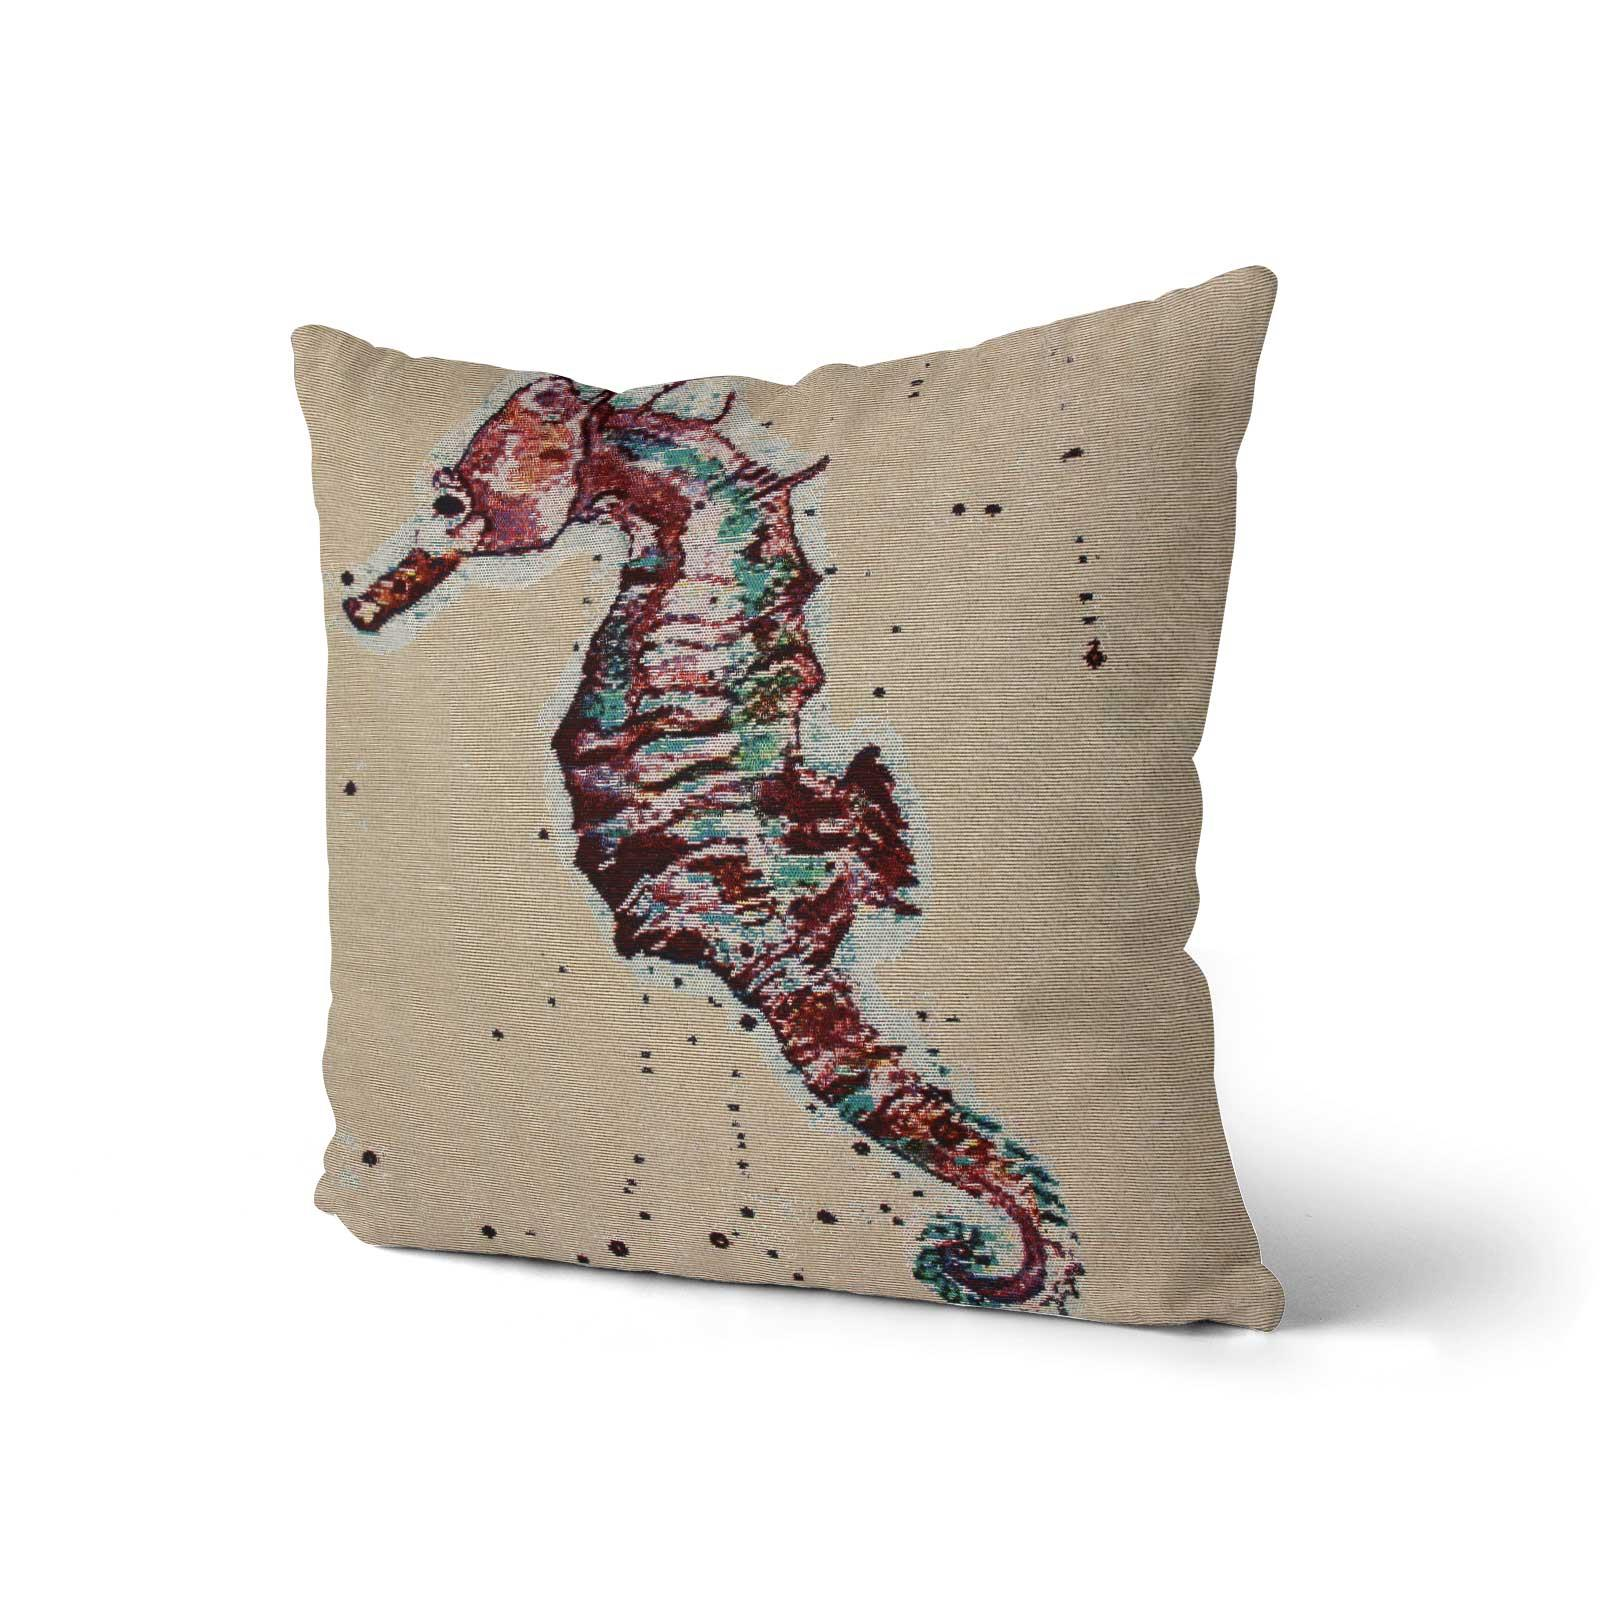 Tapestry-Cushion-Covers-Vintage-Pillow-Cover-Collection-18-034-45cm-Filled-Cushions thumbnail 181